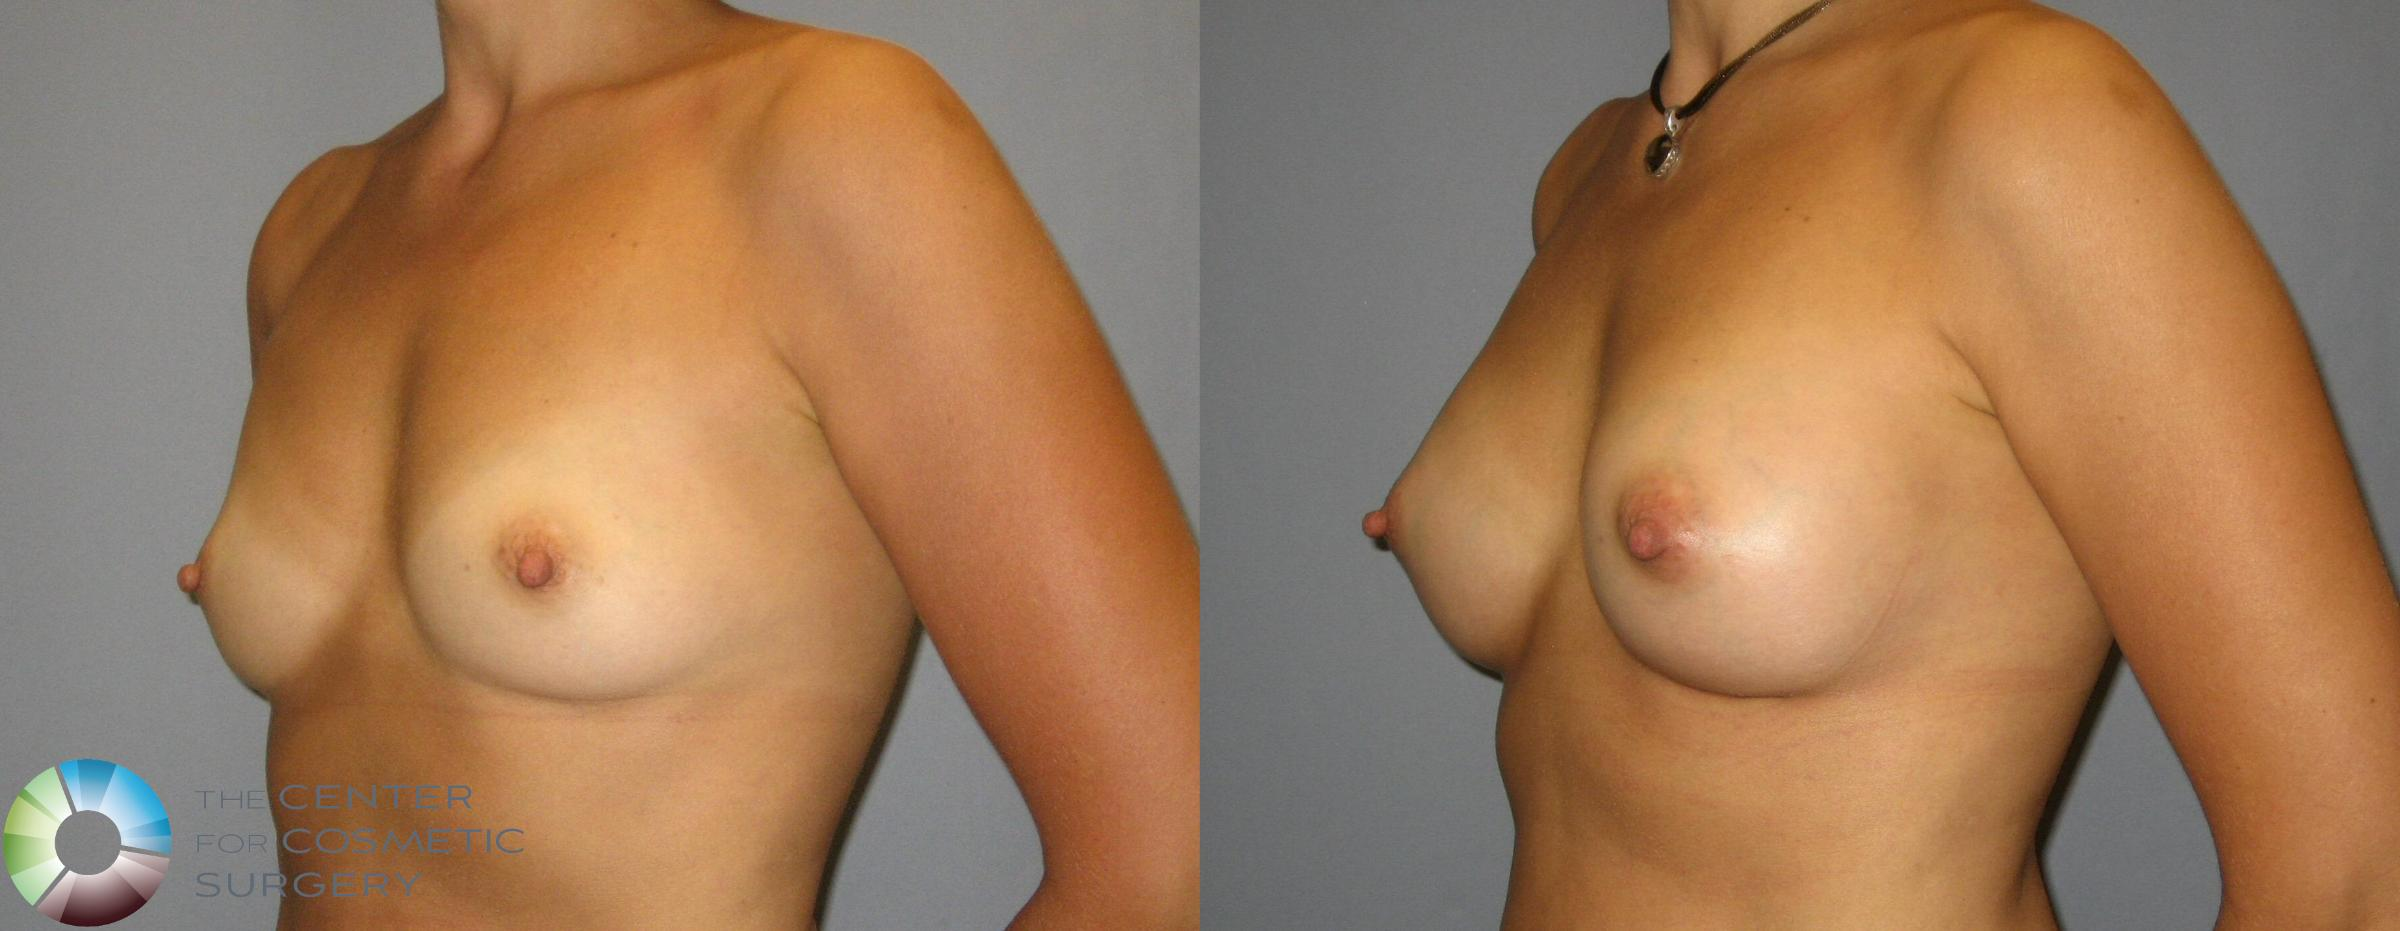 Breast Augmentation Case 351 Before & After View #2 | Golden, CO | The Center for Cosmetic Surgery